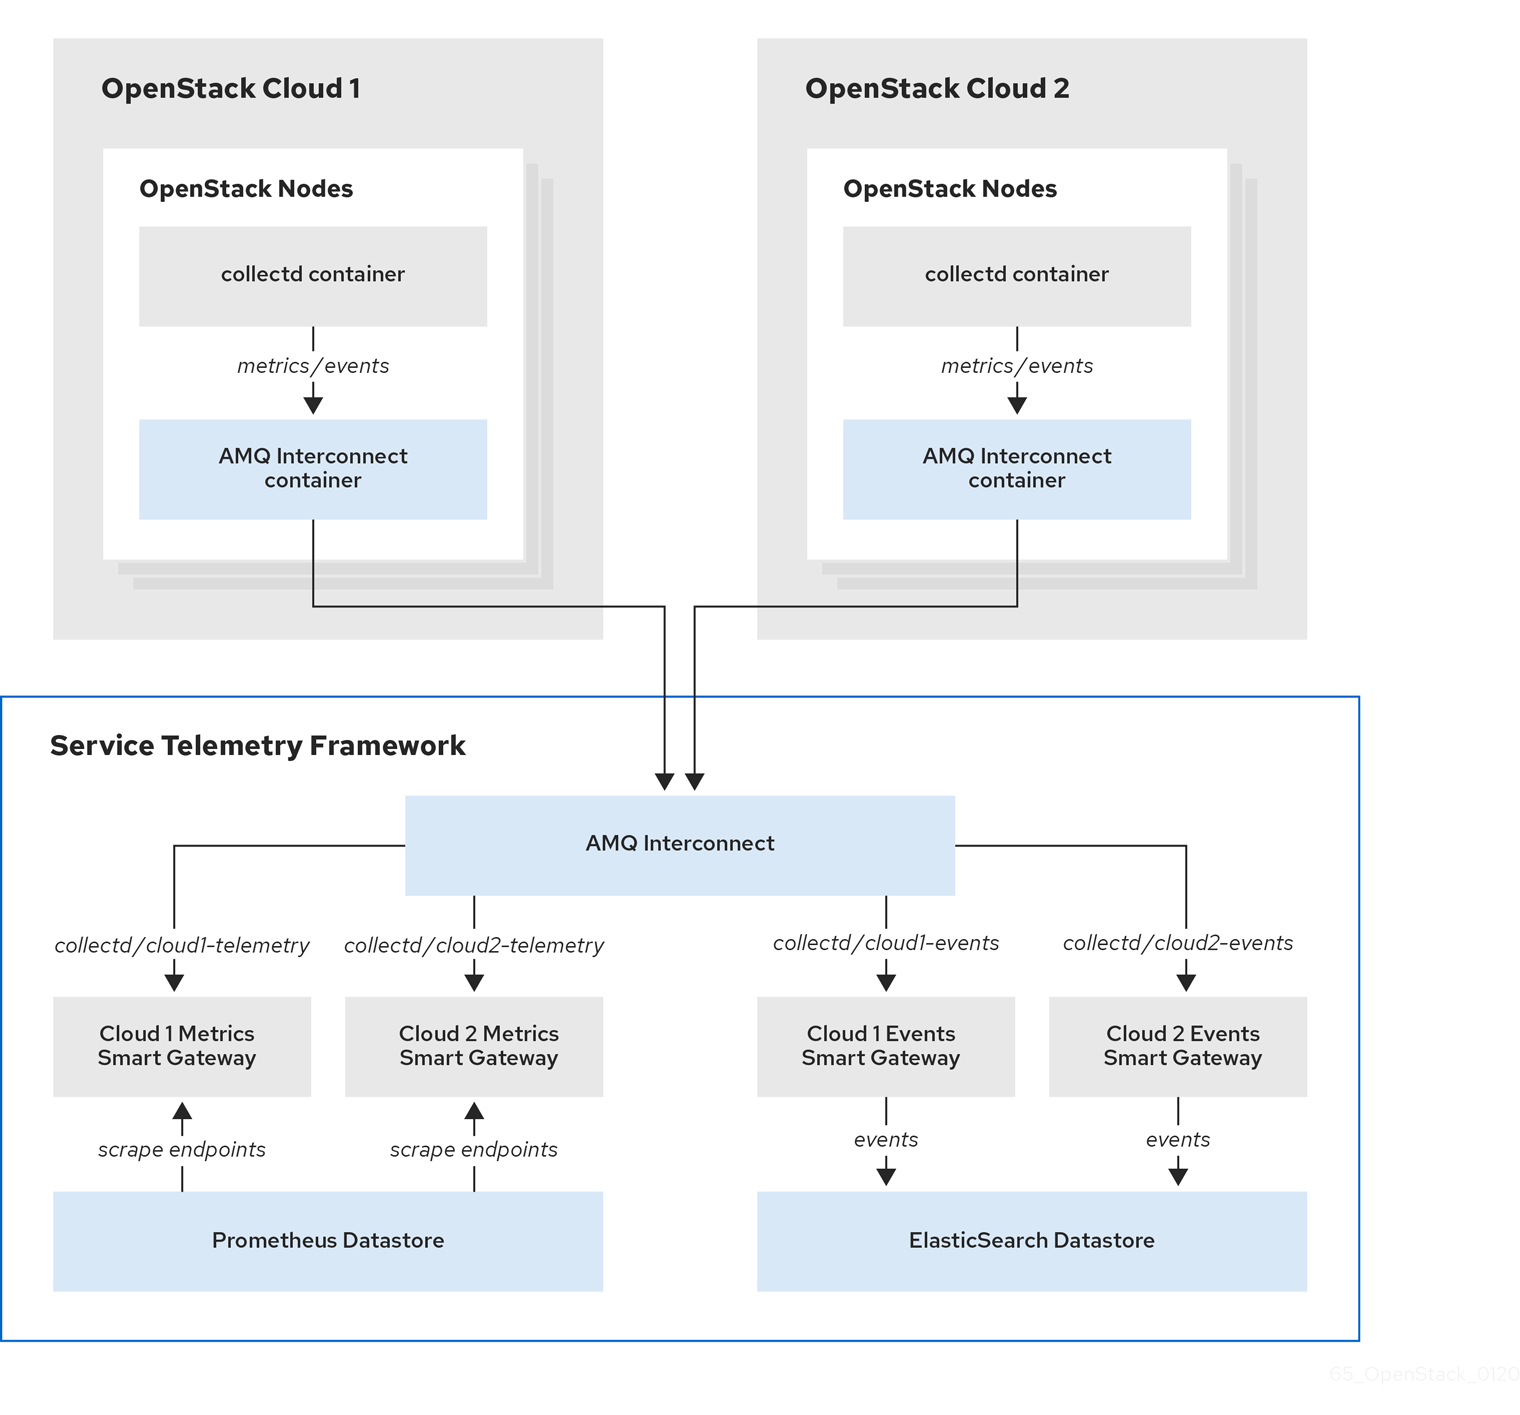 An exmaple of two RedHatOpenStackPlatform clouds connecting to STF